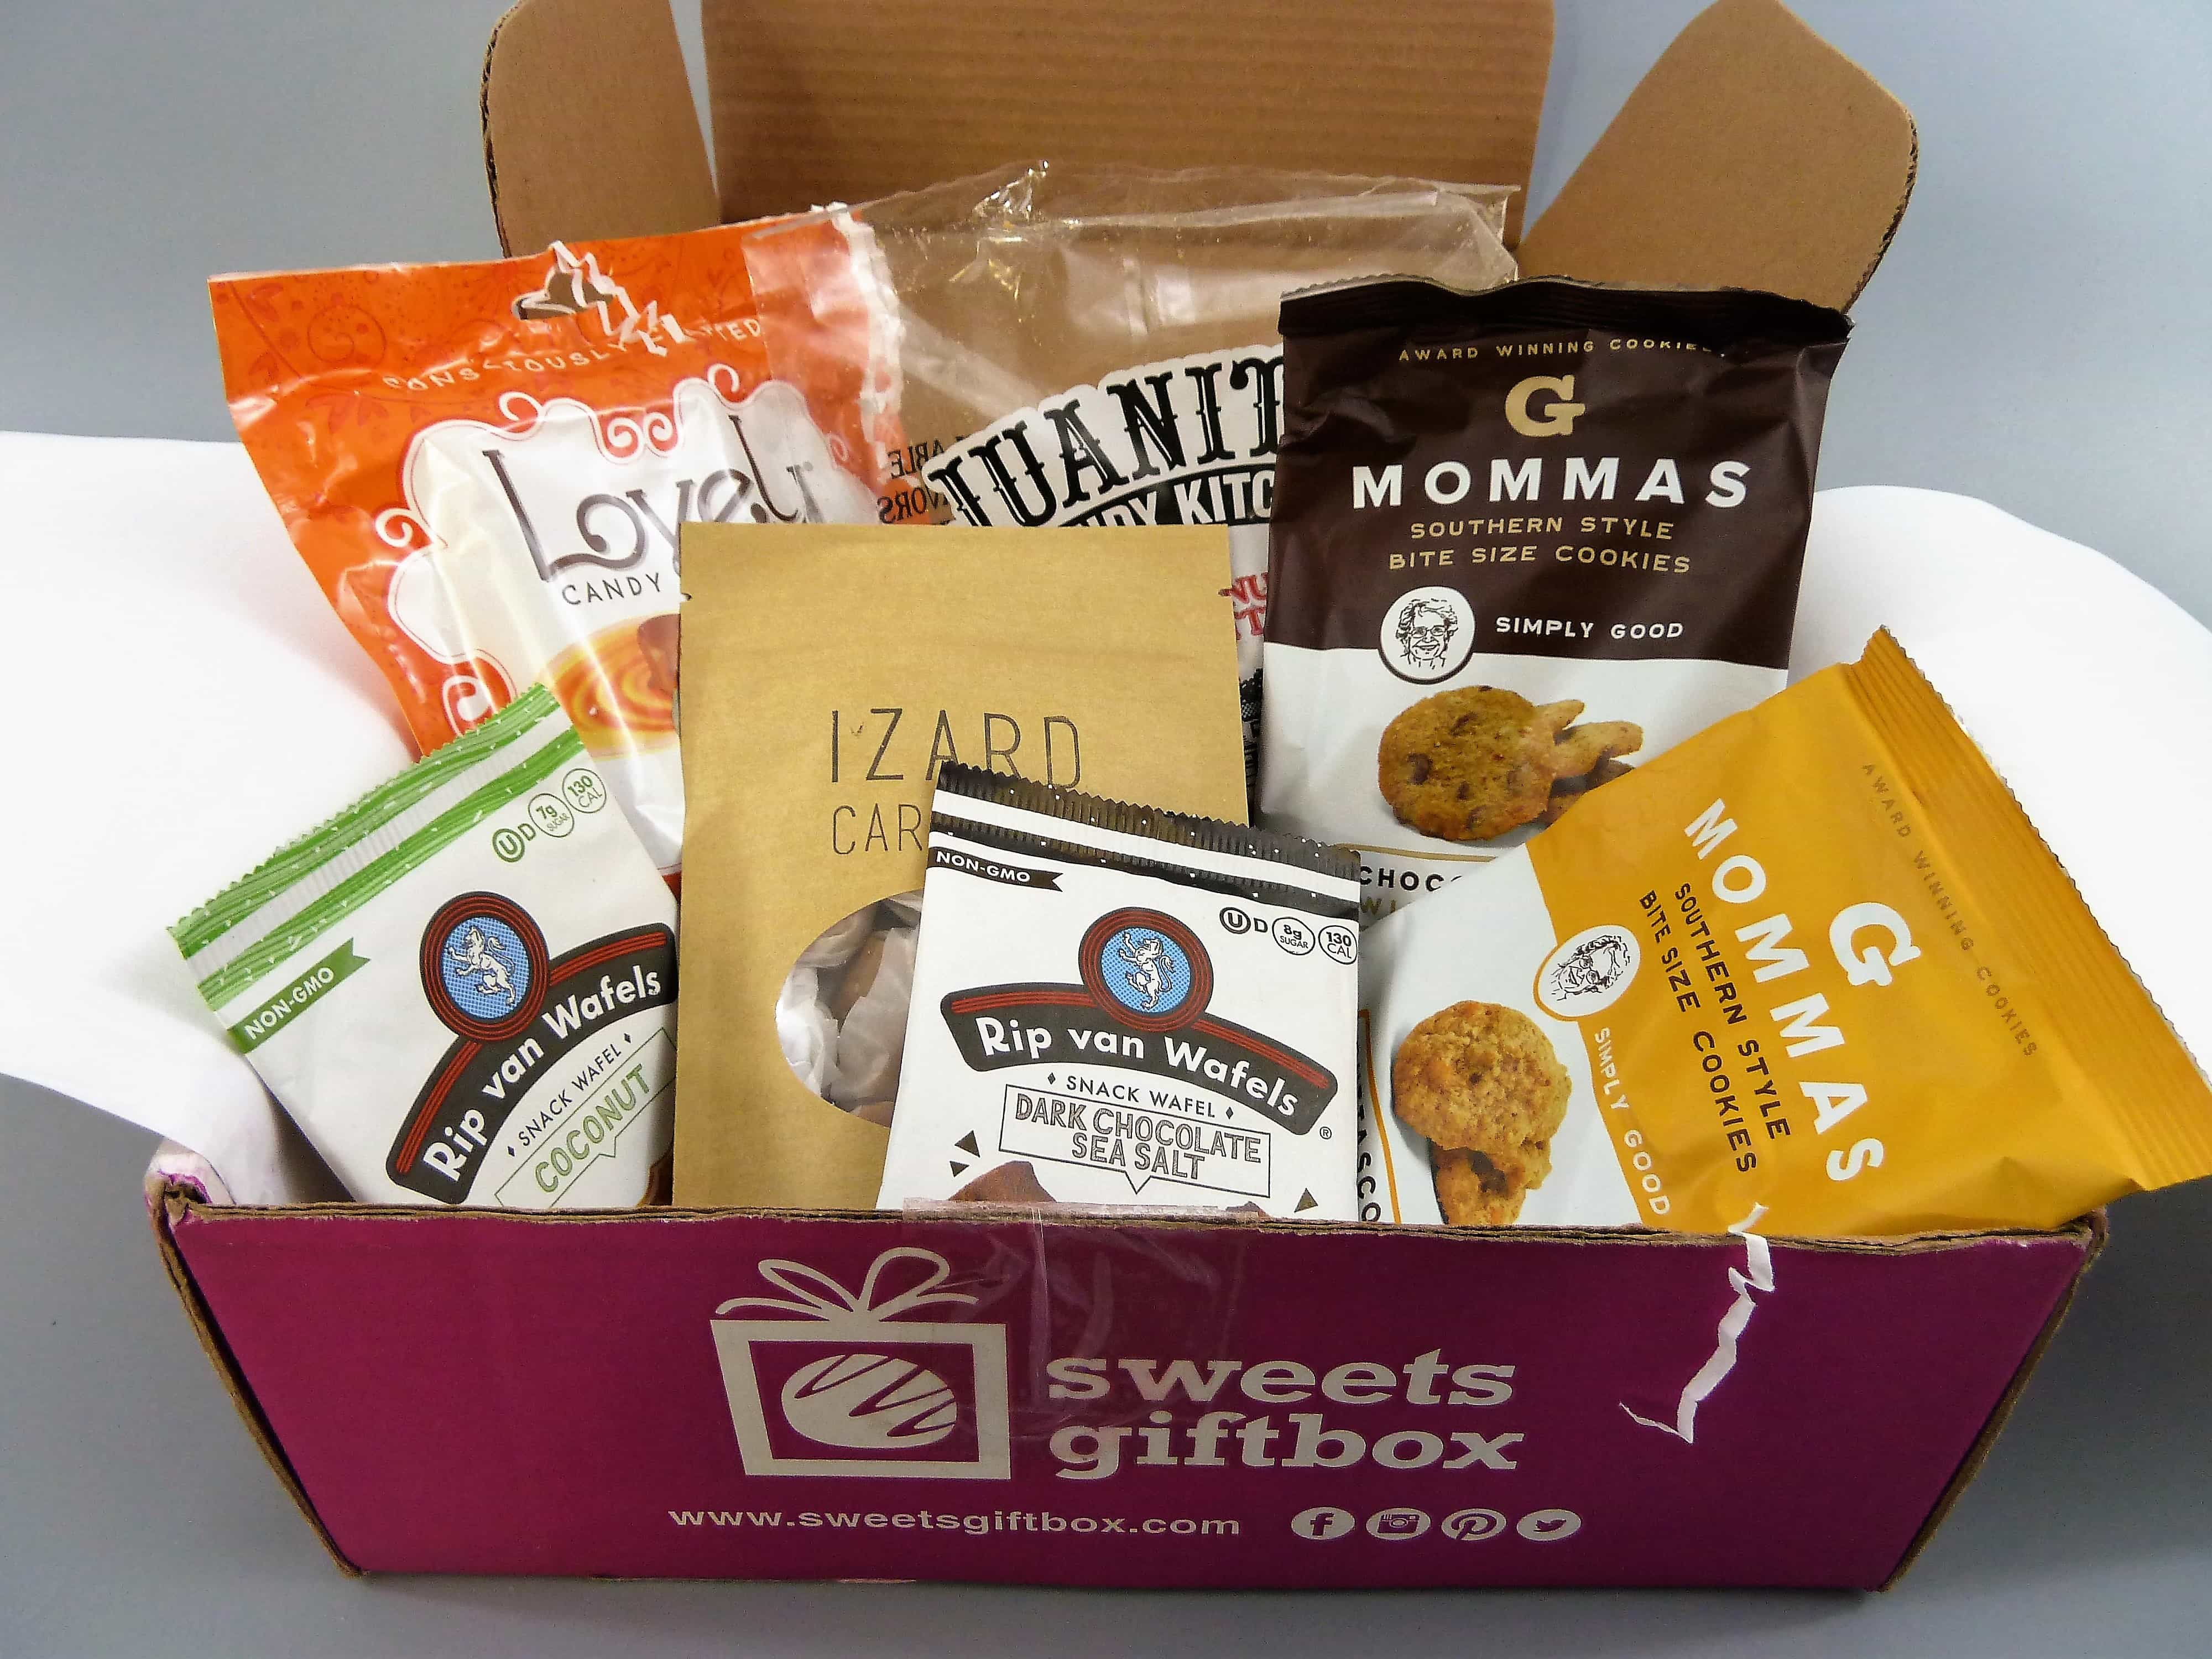 Sweets Gift Box July 2017 Subscription Box Review